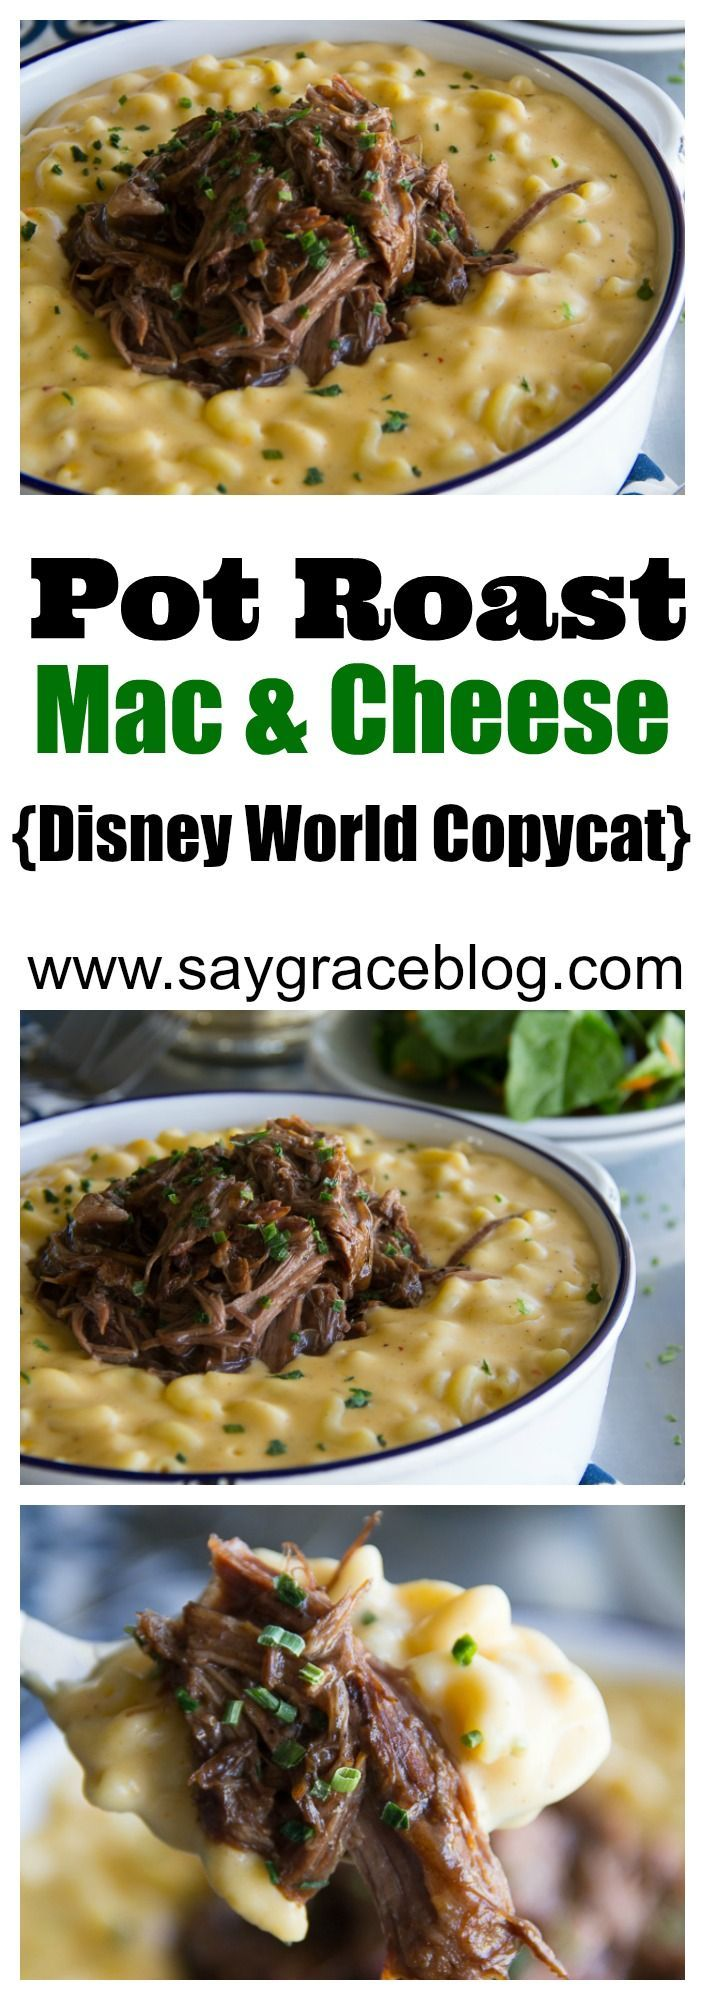 HoneyBaked Ham's slow cooked, tender Beef Pot Roast gets piled on top of a creamy, spicy, homemade macaroni and cheese to copycat the popular Magic Kingdom comfort dish.